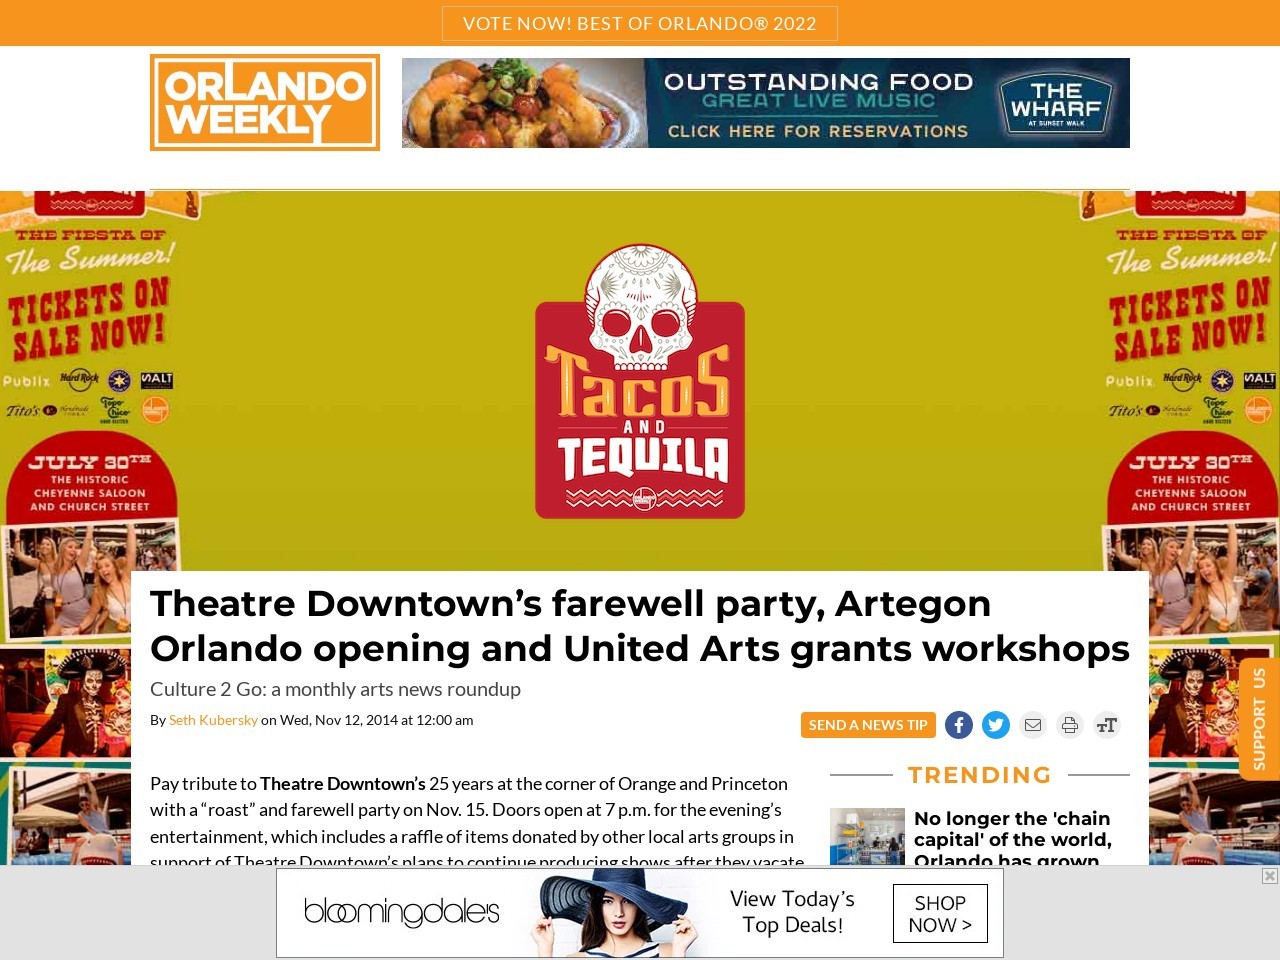 Theatre Downtown's farewell party, Artegon Orlando opening